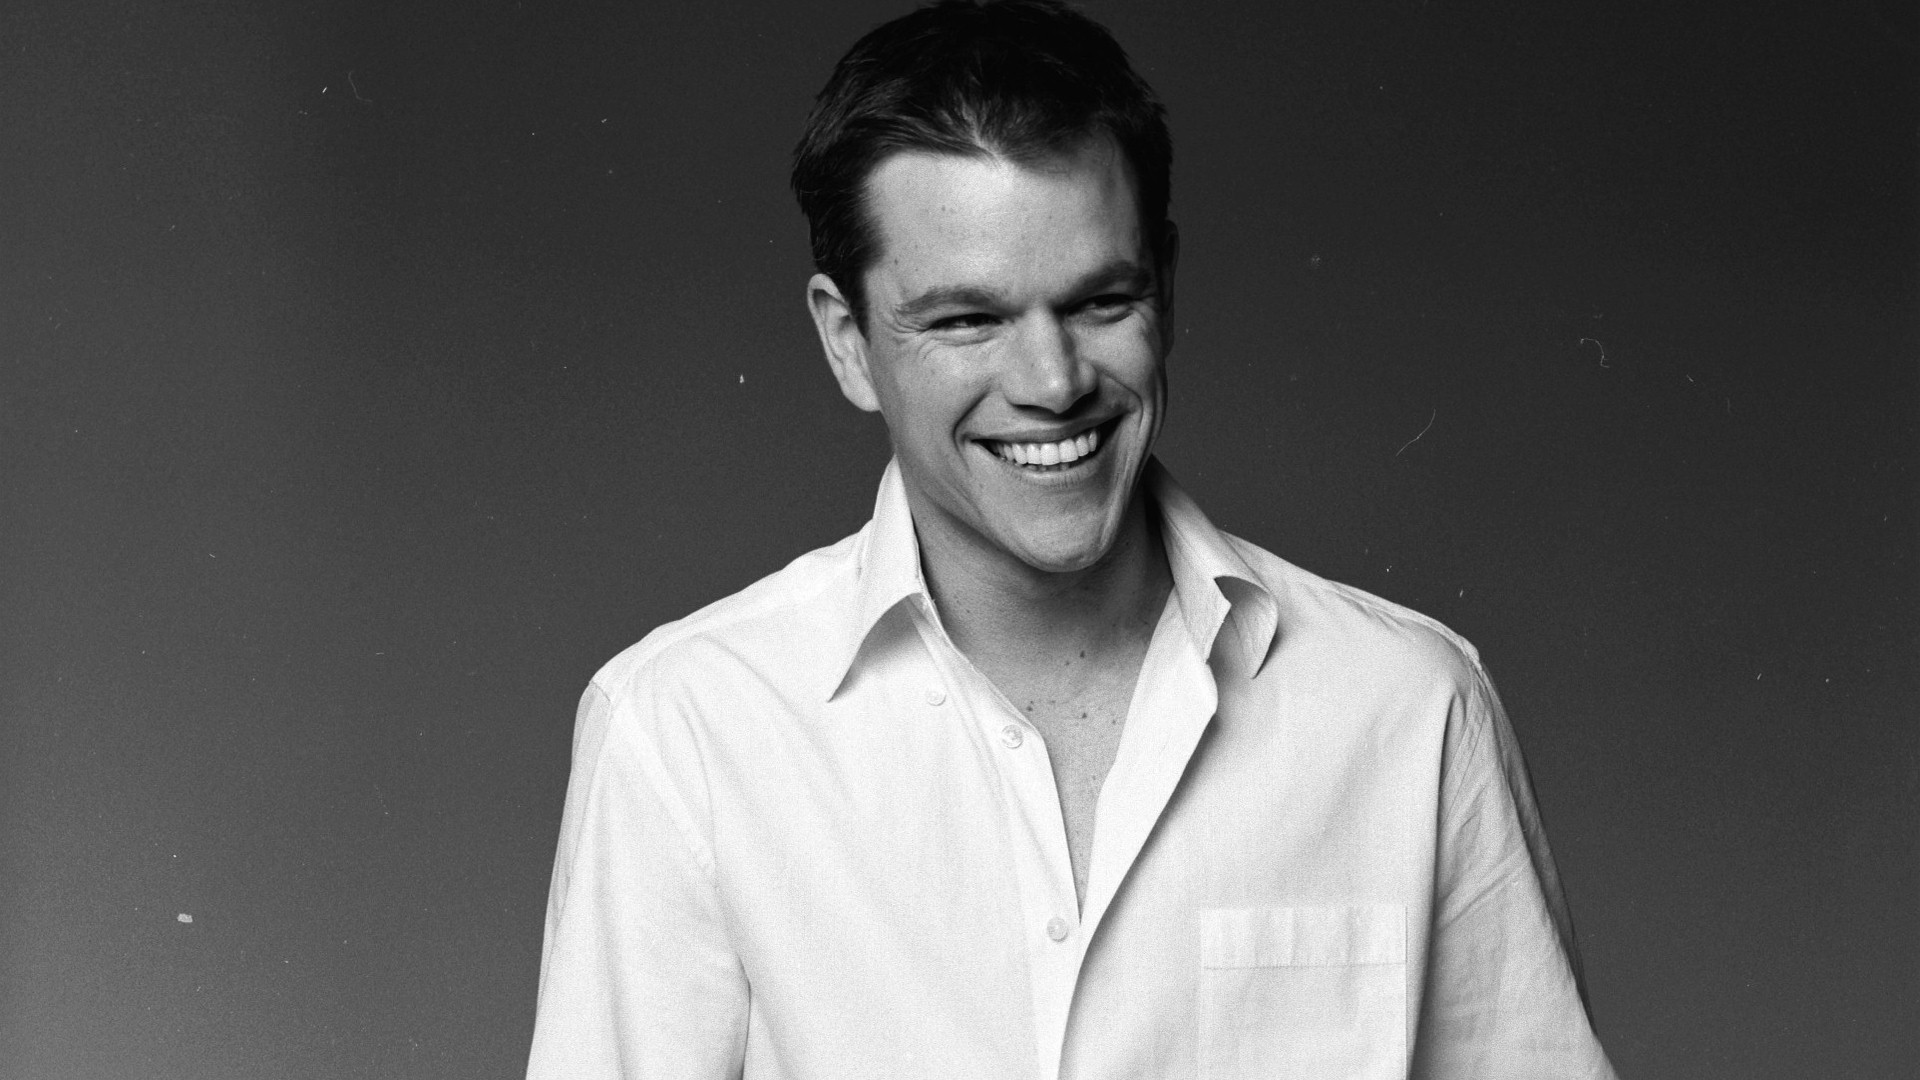 matt damon - photo #37